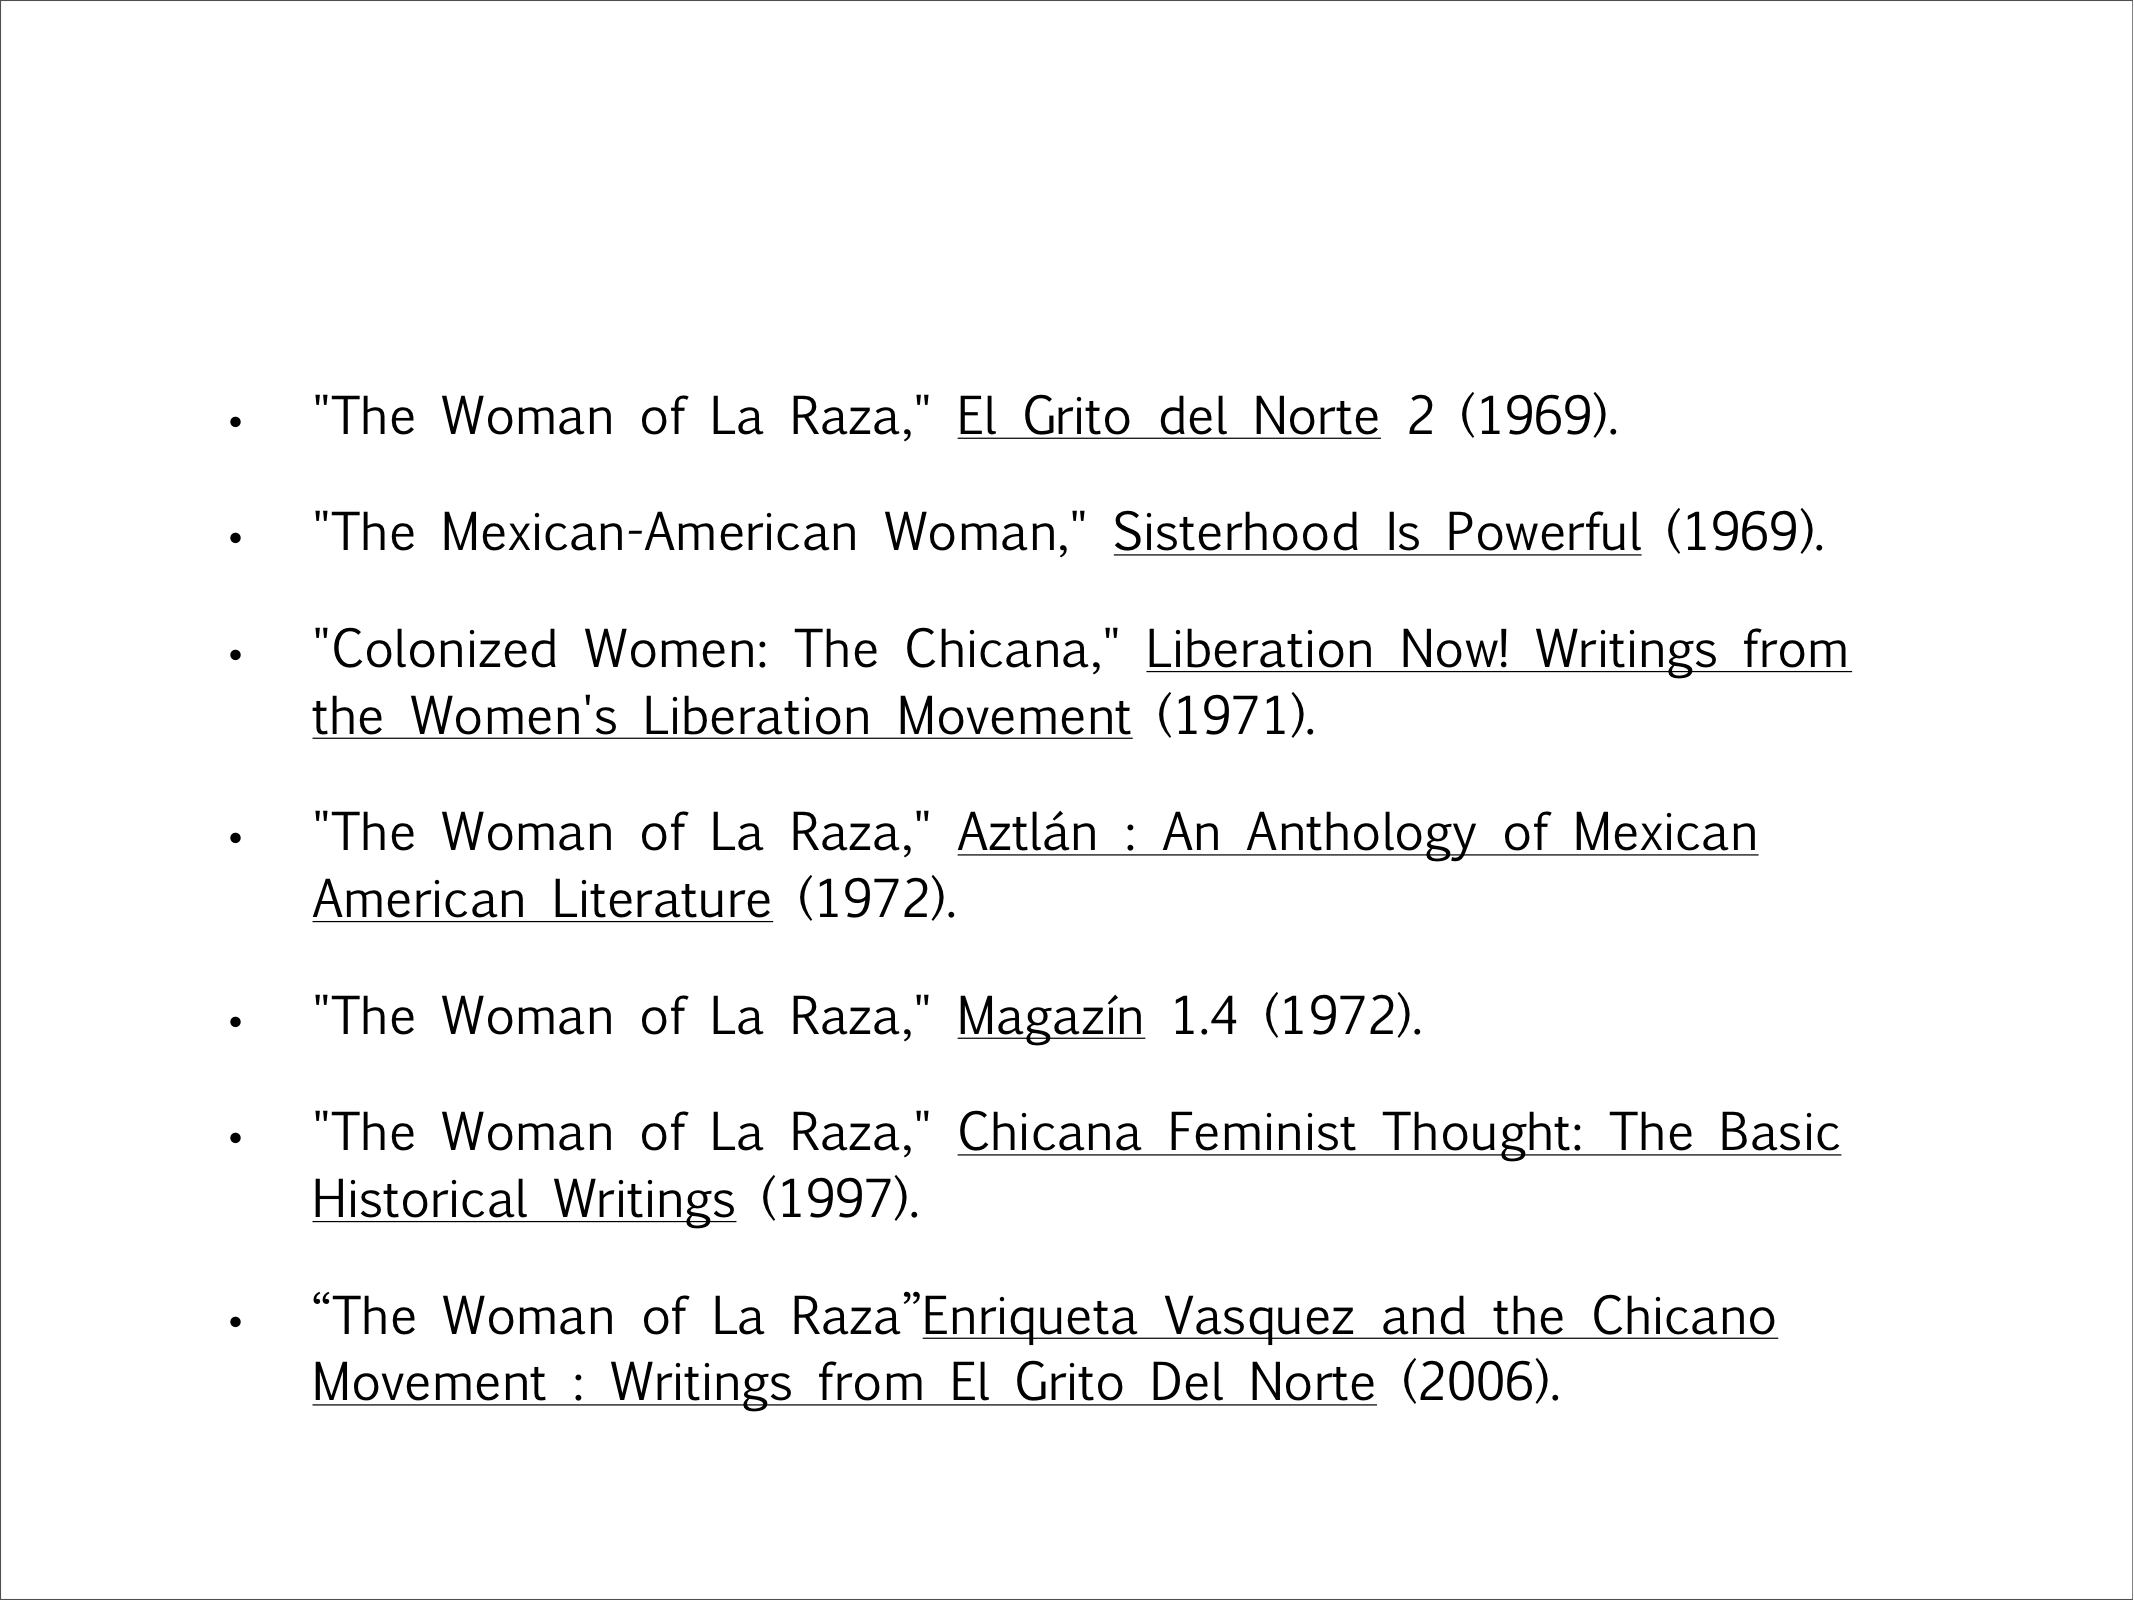 malcs institute paper the case of the second chicana annemarie on those terms enriqueta vatildeiexclsquez s variously titled article can be counted as one of the most influential essays of the chicano movement